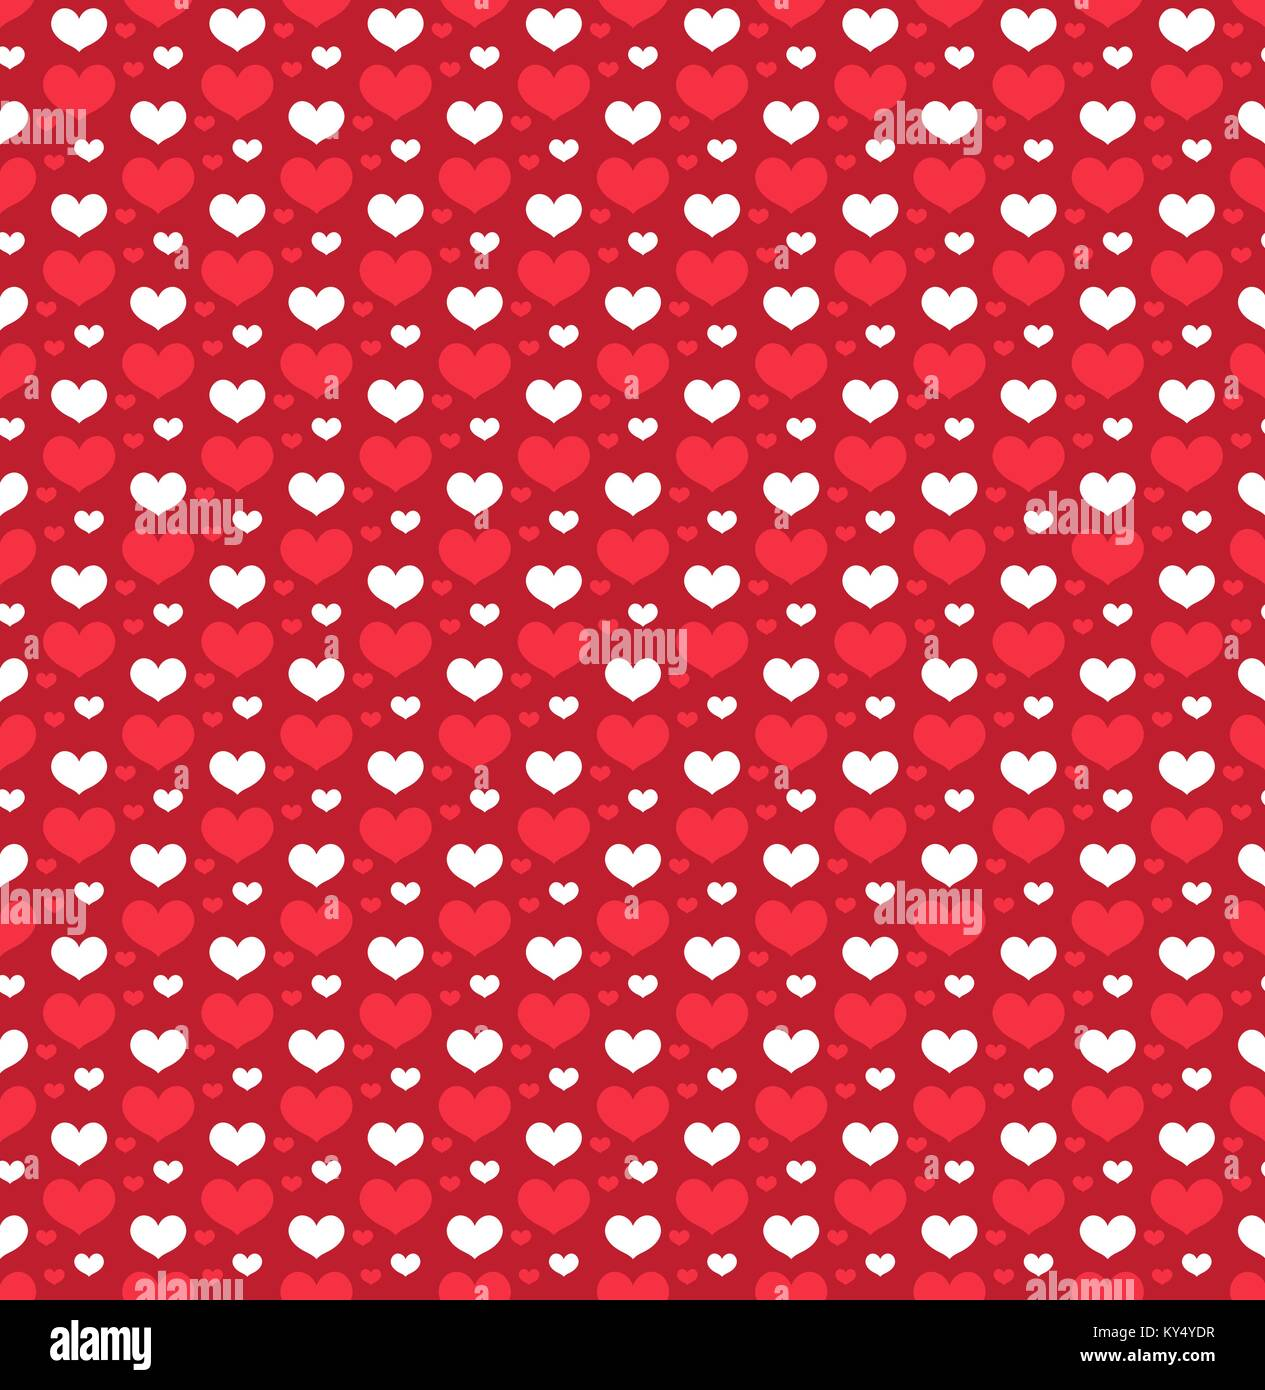 Heart Seamless Pattern Love Repeating Texture Endless Background Wallpaper Backdrop Vector Illustration